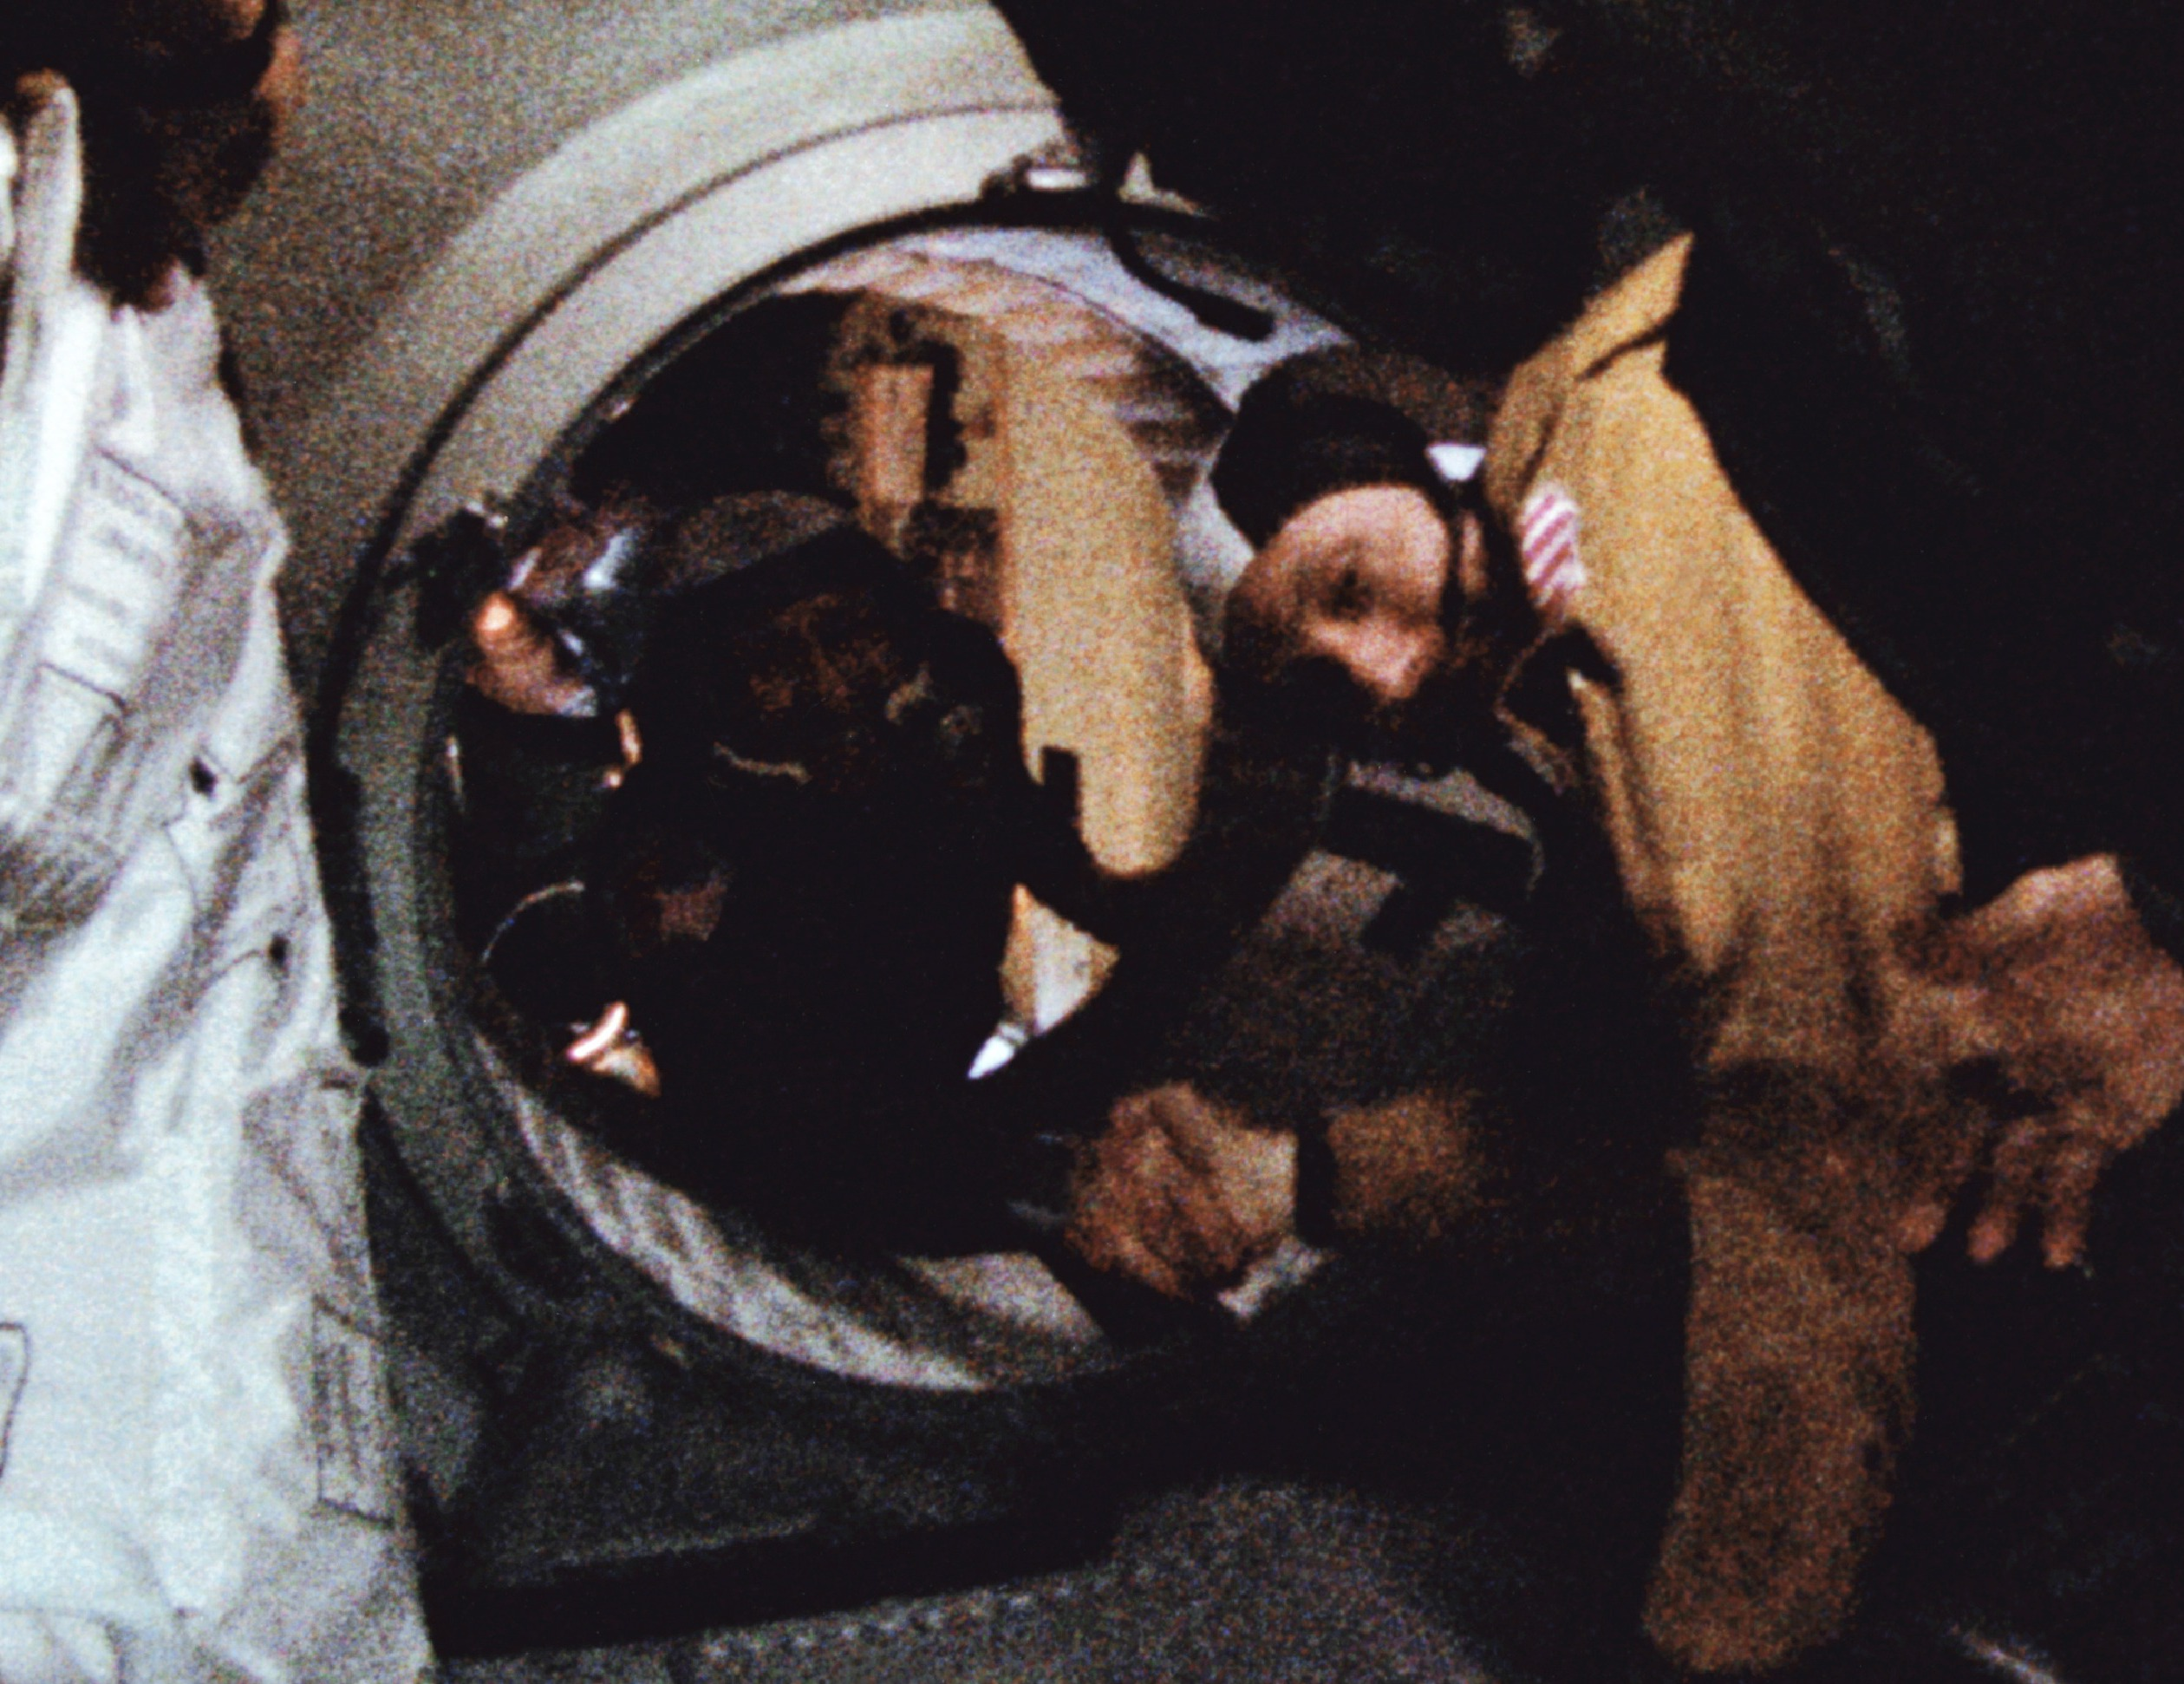 Astronaut Tom Stafford (in foreground) and cosmonaut Alexei Leonov make their historic handshake in space on July 17, 1975.